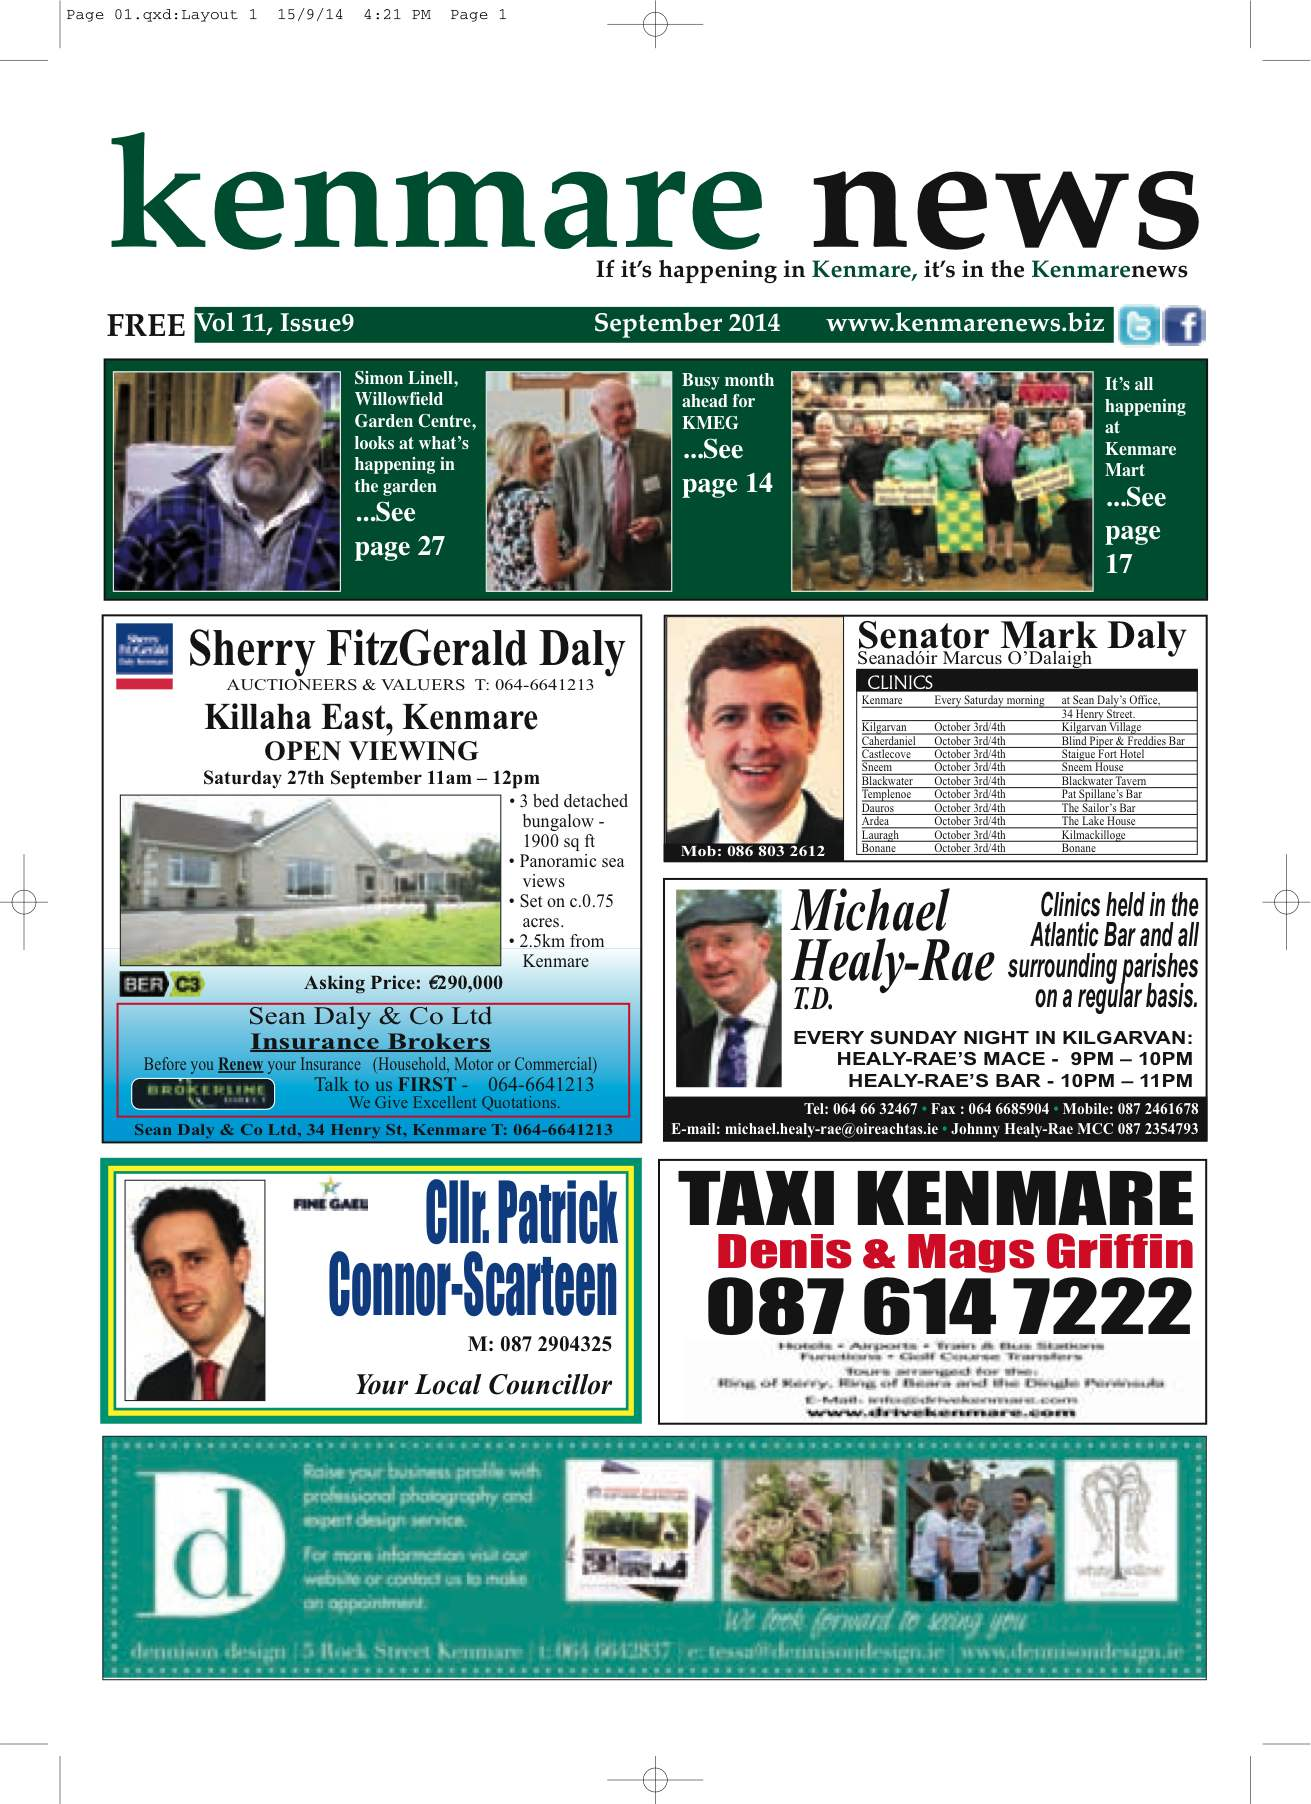 Kenmare News September 2014